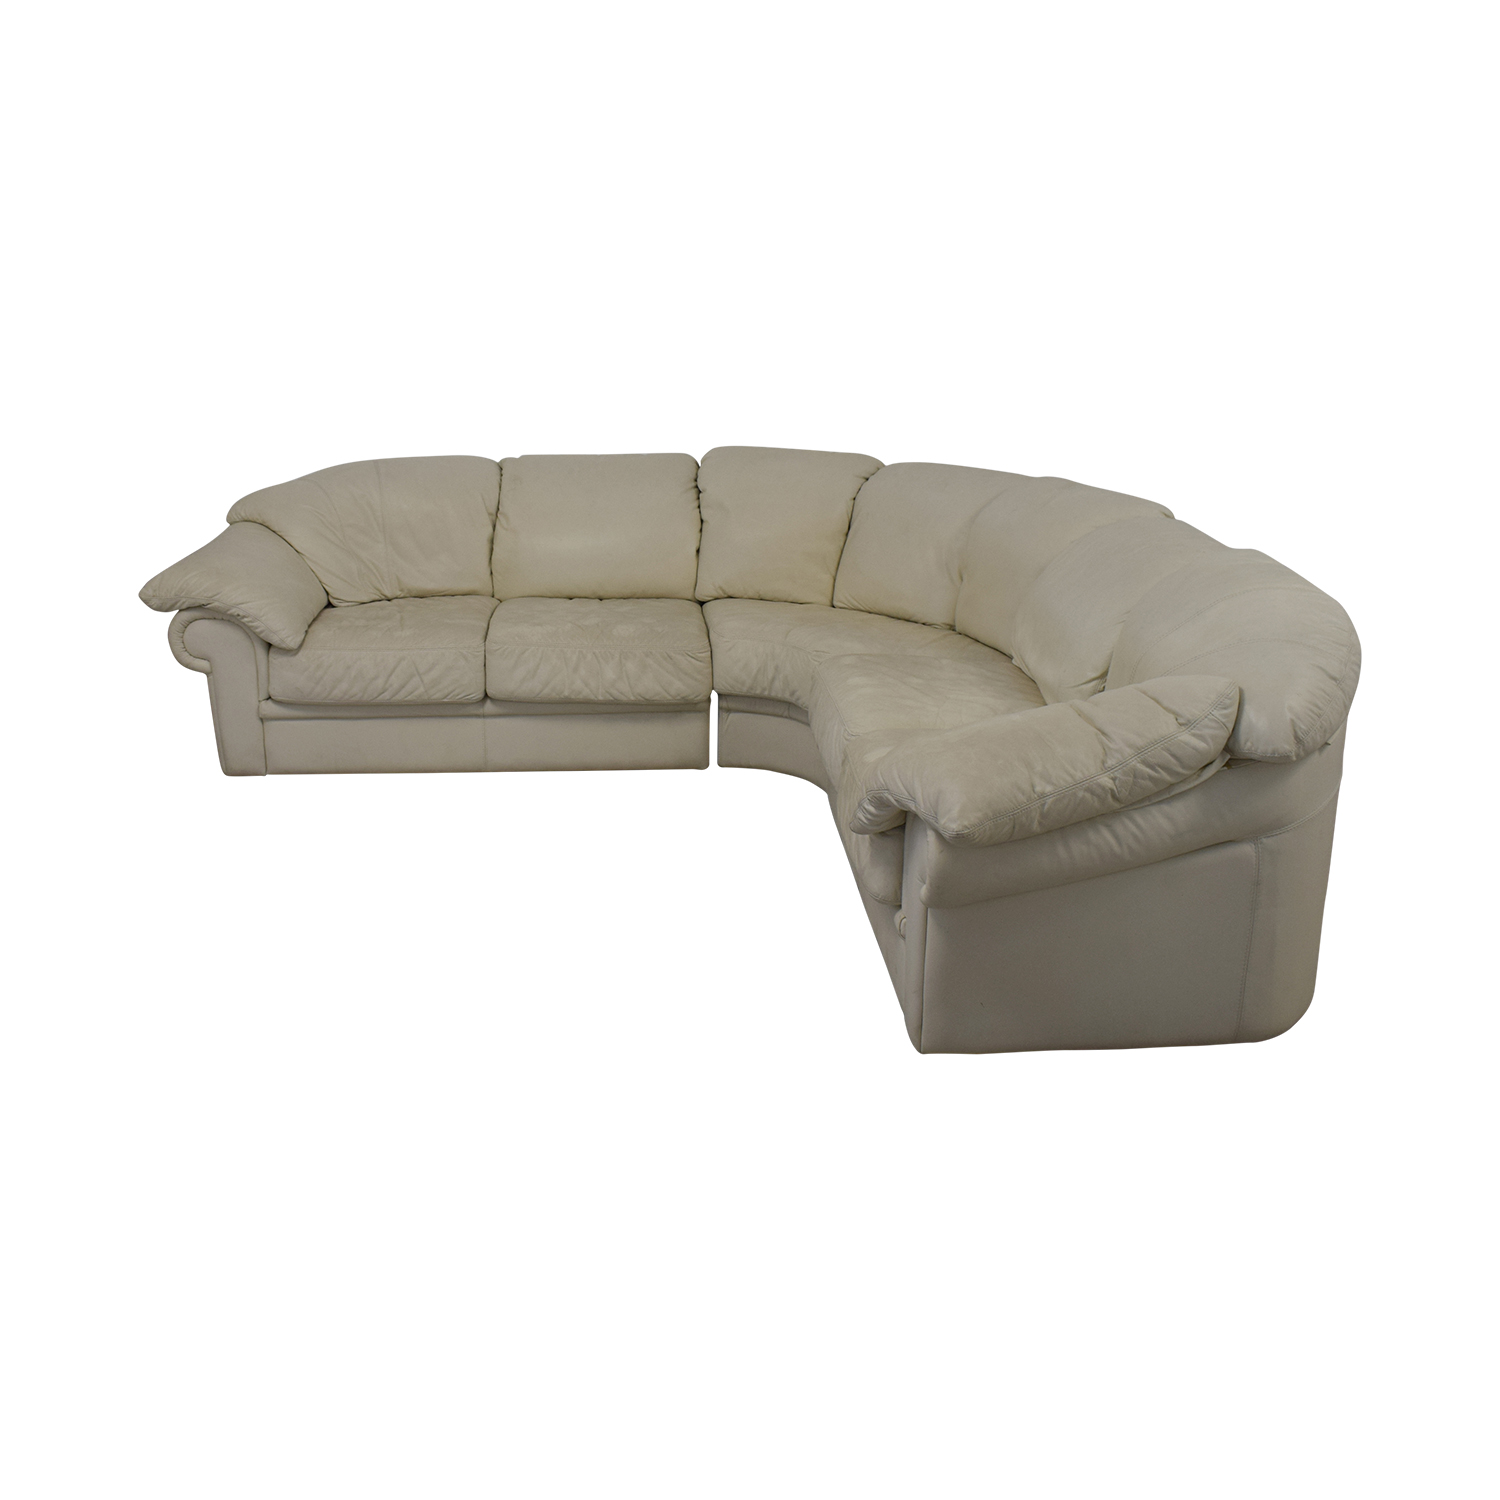 Natuzzi Natuzzi Sectional Sofa dimensions